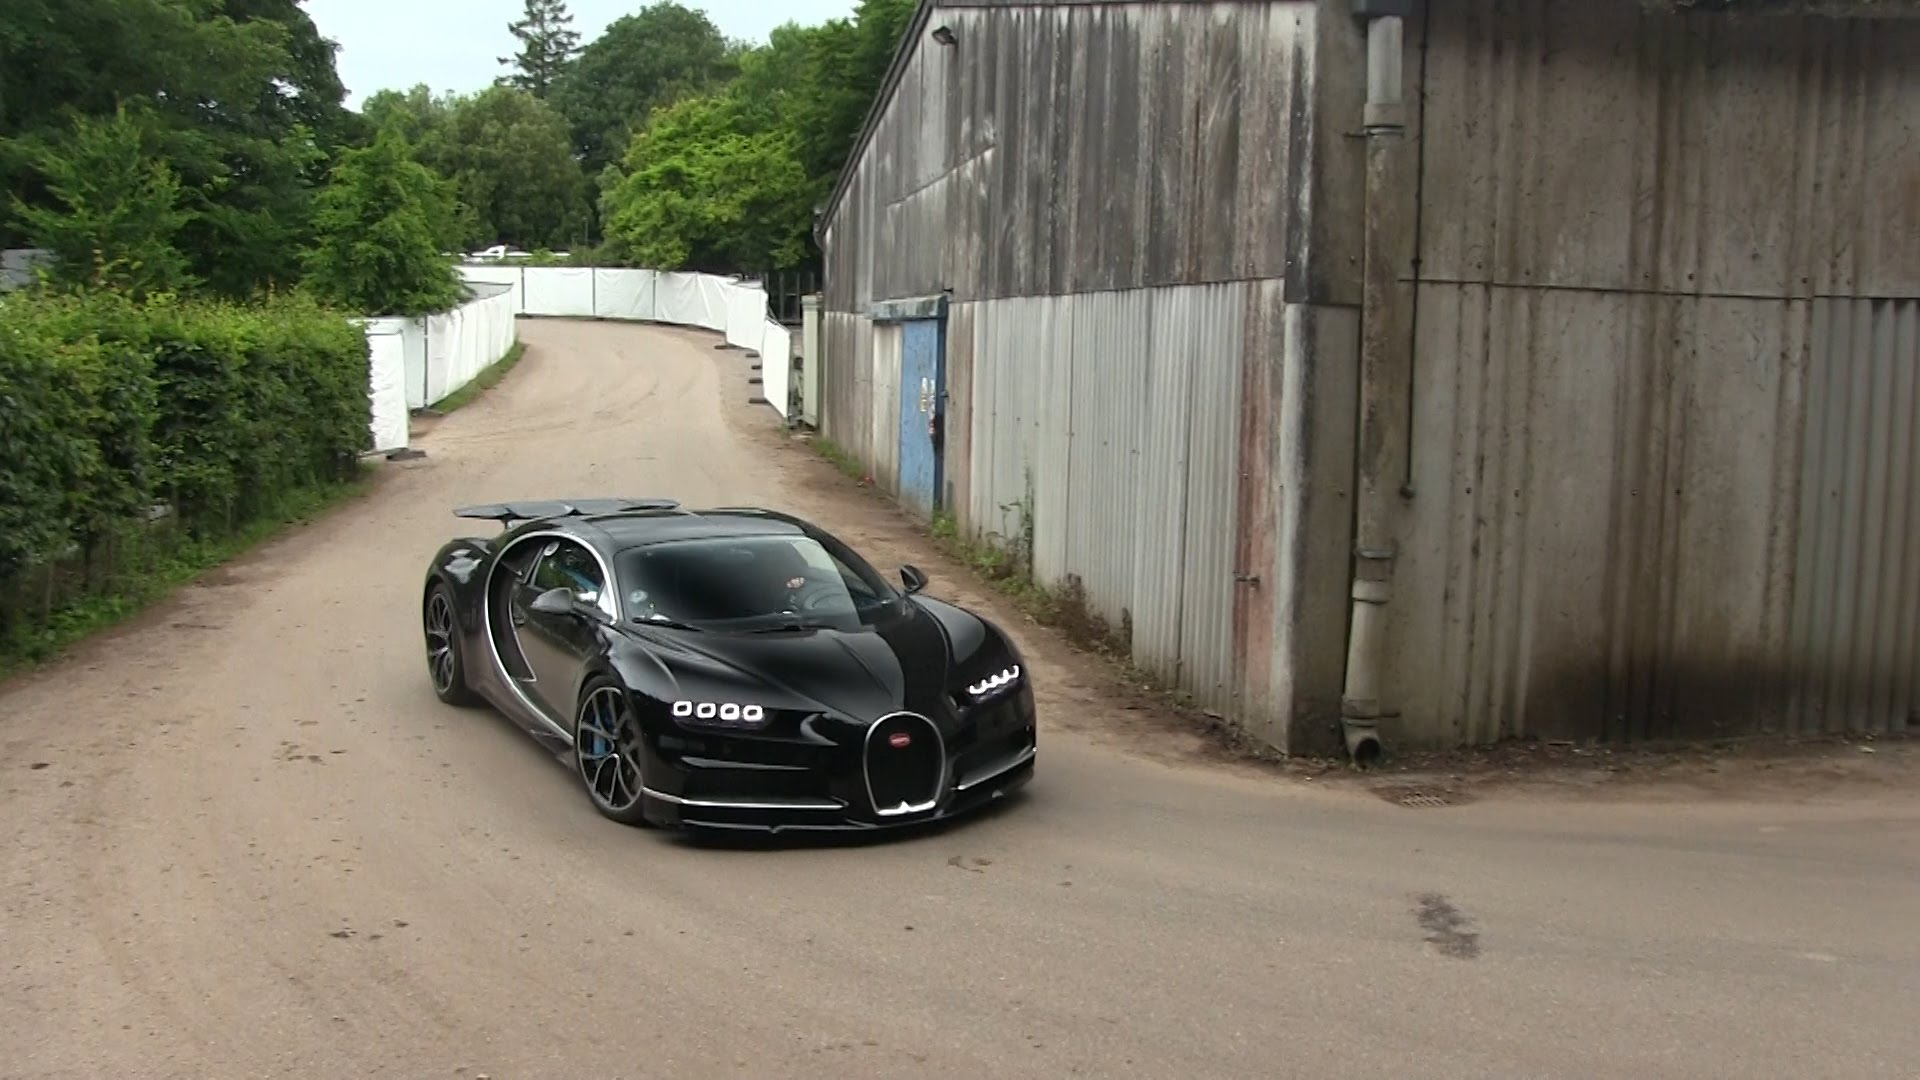 1500hp Bugatti Chiron At Goodwood Dragtimes Com Drag